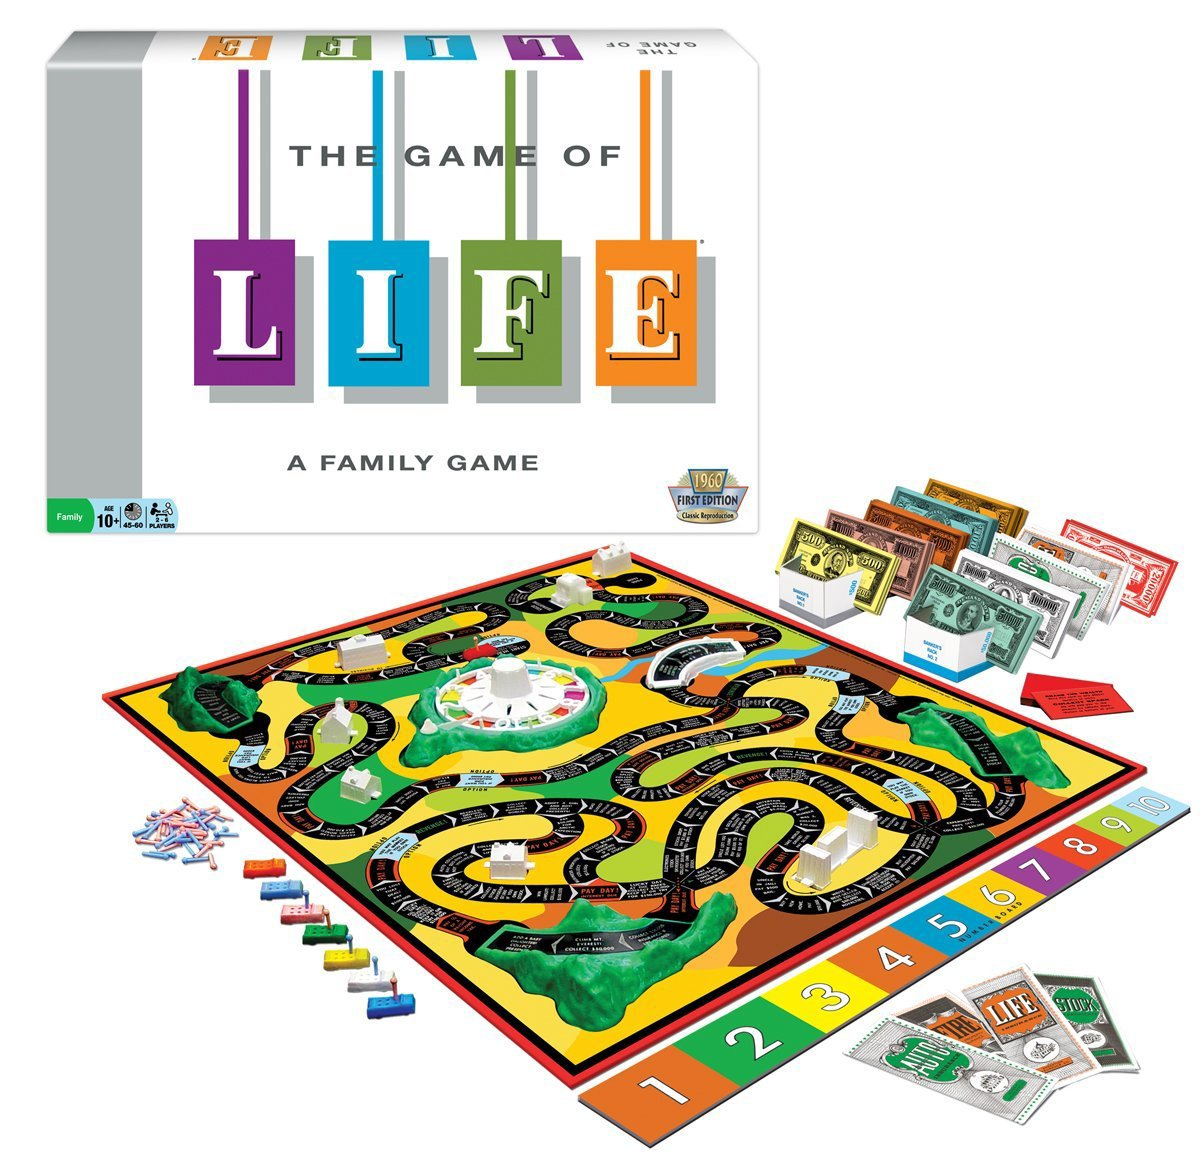 THE GAME OF LIFE BOARD GAME ORIGINAL FIRST EDITION 1960s VERSION BRAND NEW - Vintage Manufacture